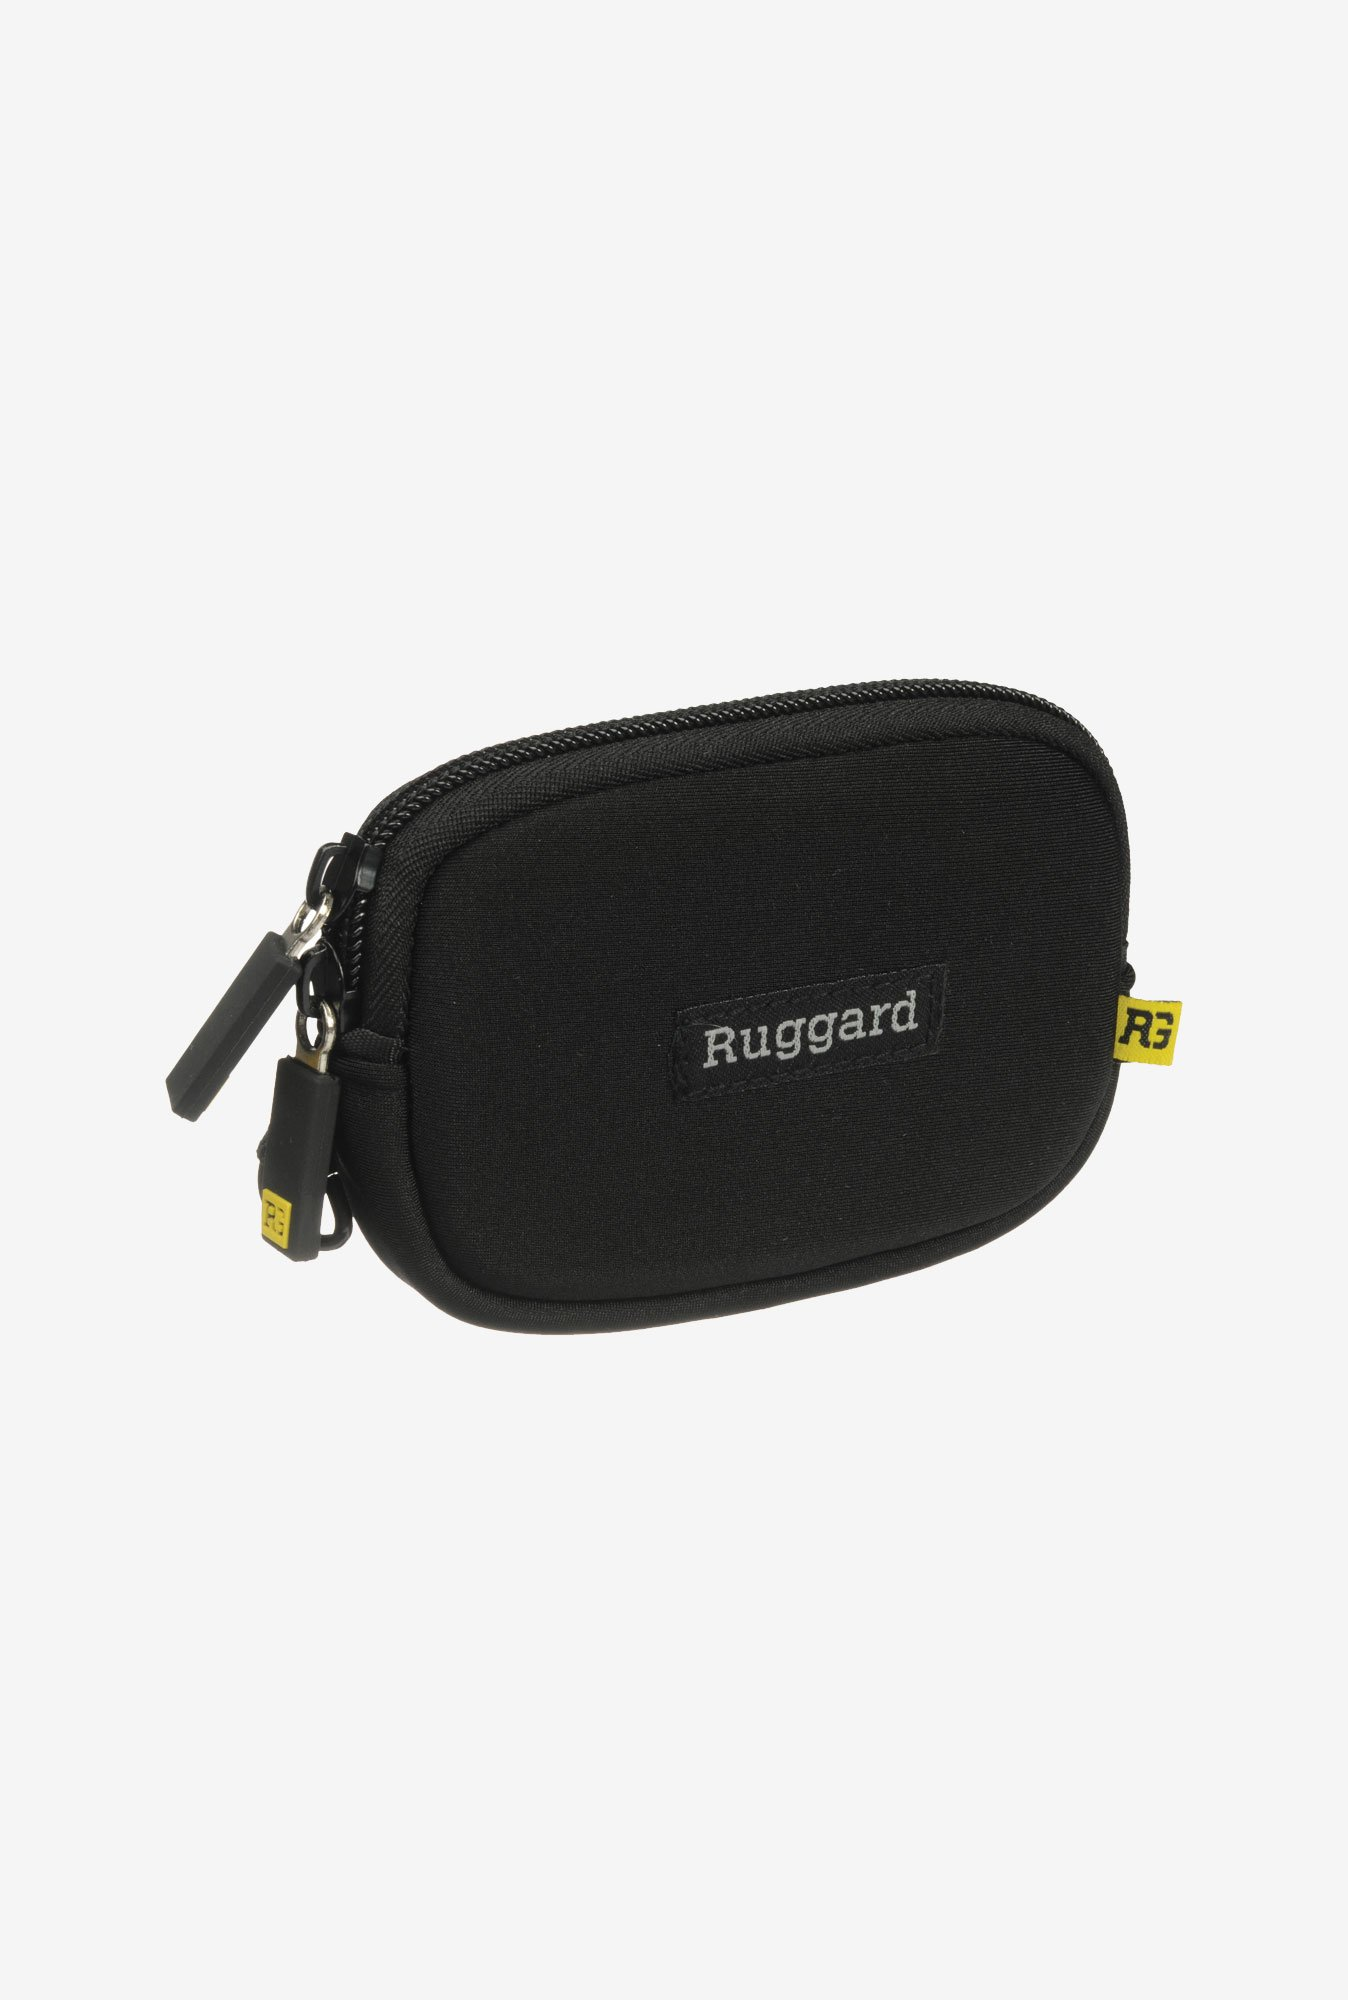 Ruggard NP-230 Neoprene Pouch (Black)